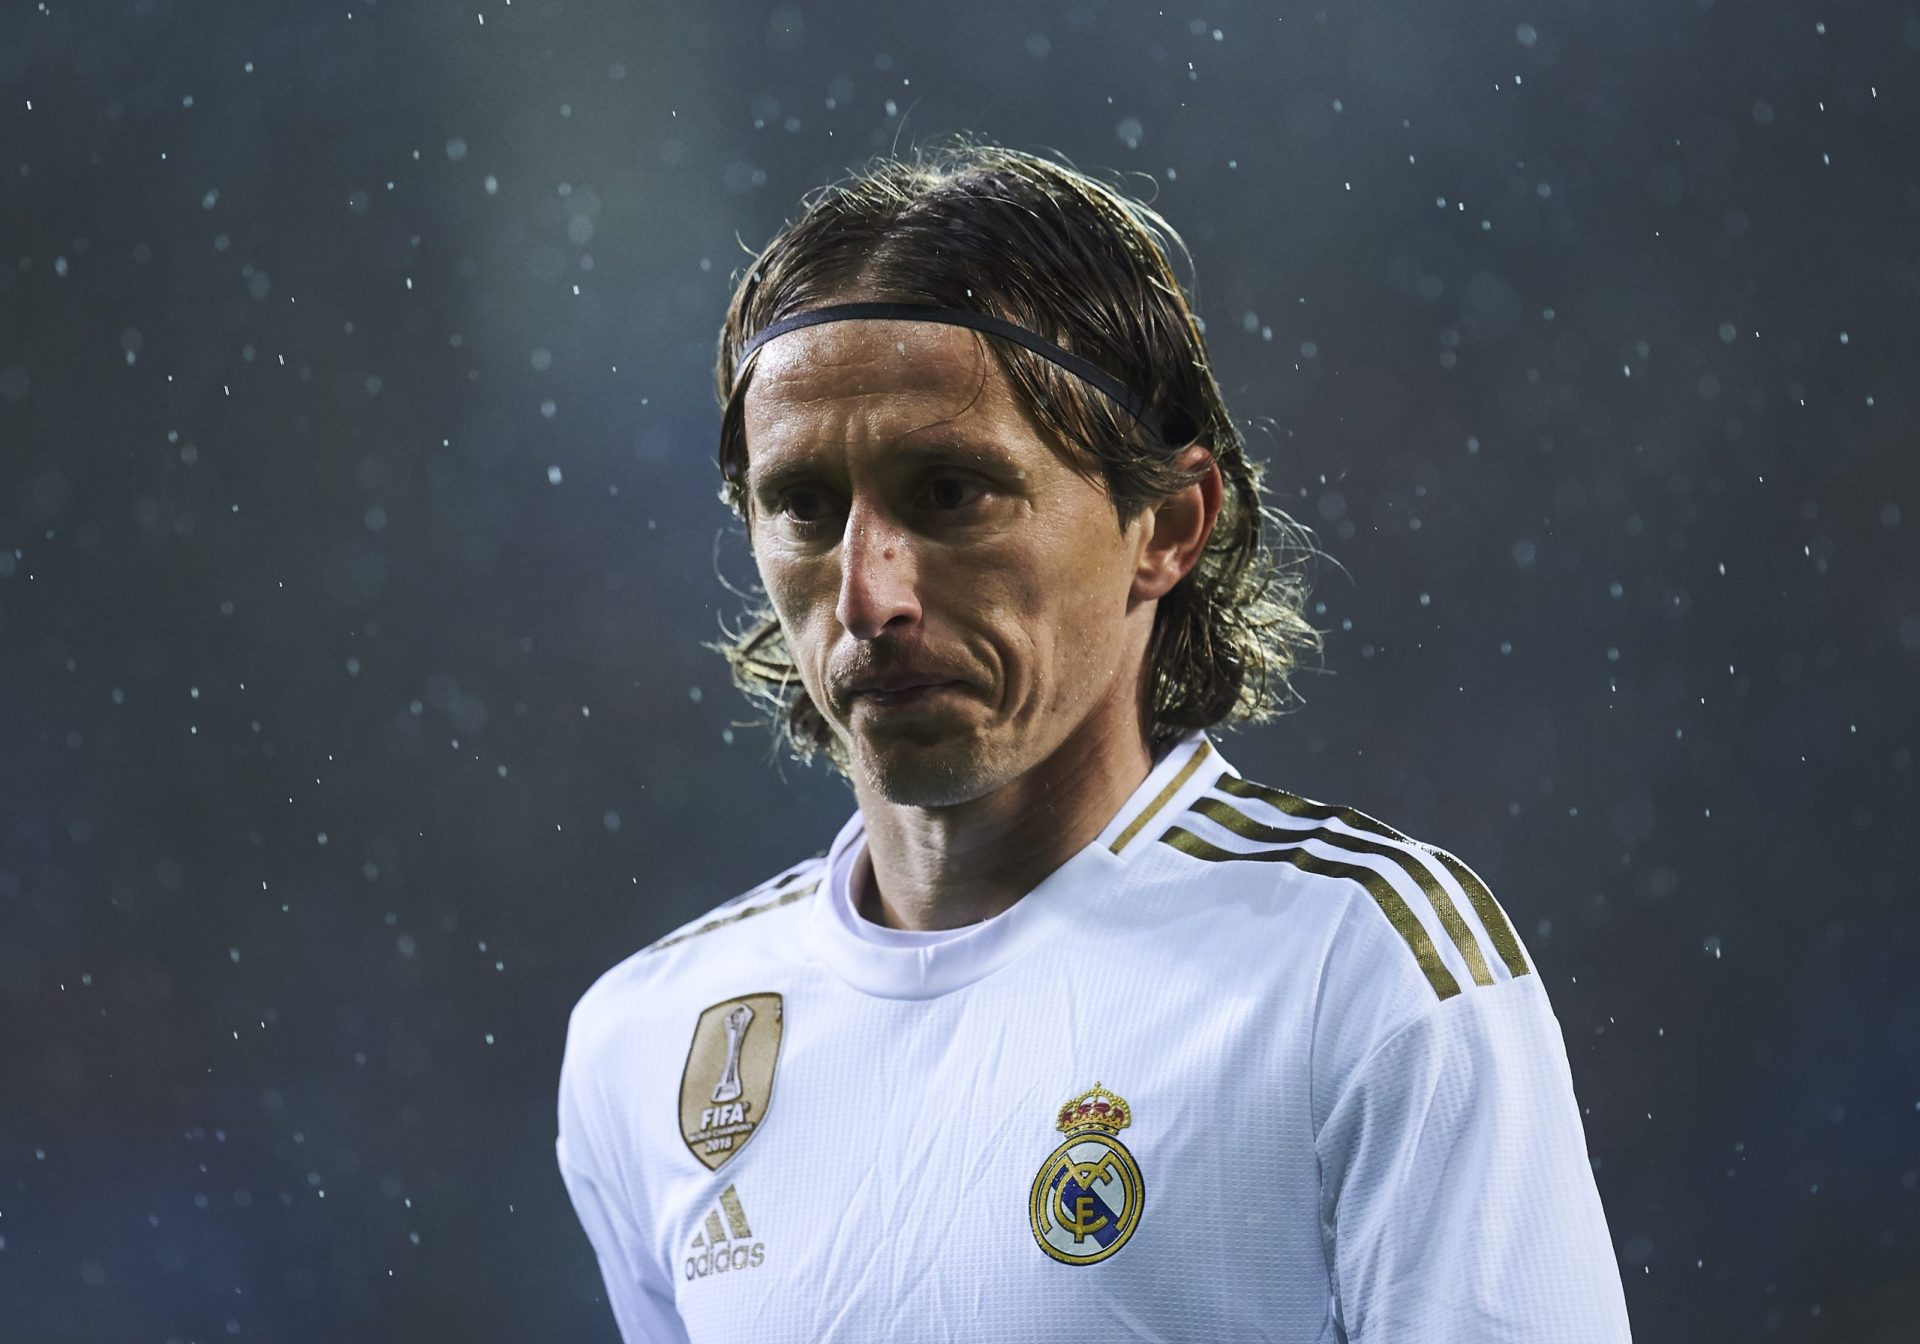 Luka Modrić, and a war-torn childhood of alarms and bombs - THE SPORTS ROOM